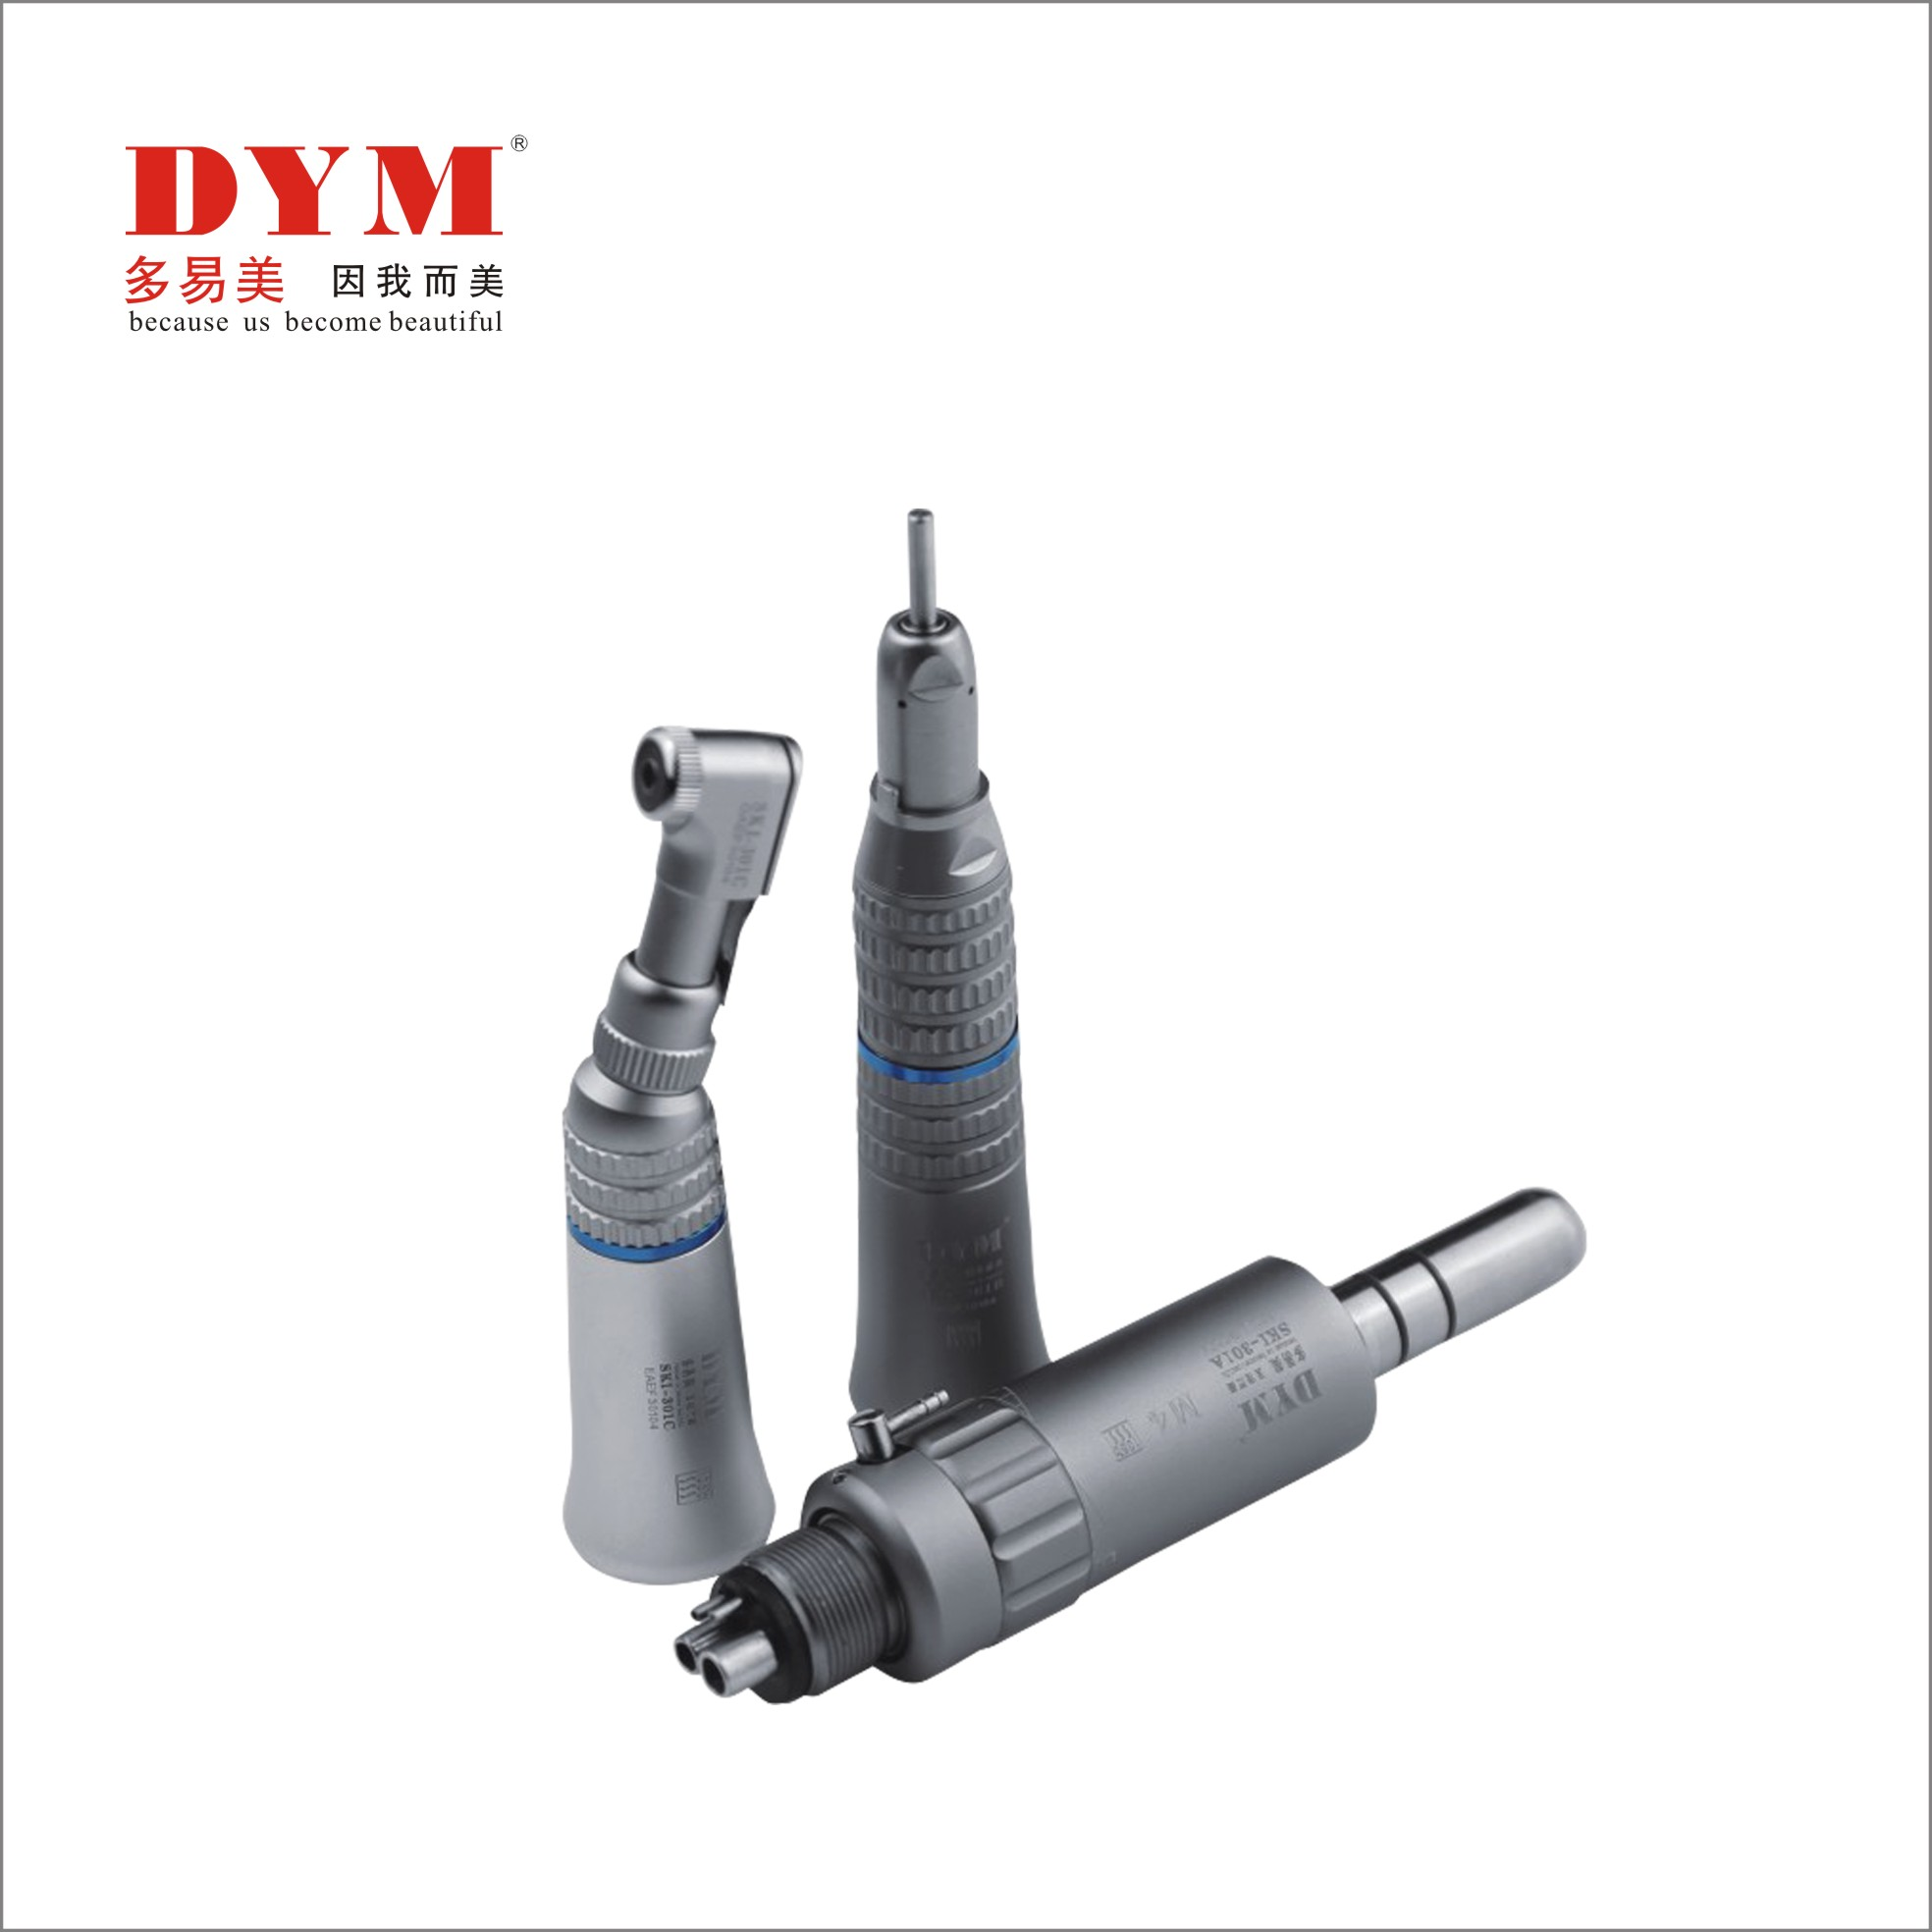 2 hole or 4 hole push button cartidge air motor low speed dental handpiece Manufacturers, 2 hole or 4 hole push button cartidge air motor low speed dental handpiece Factory, Supply 2 hole or 4 hole push button cartidge air motor low speed dental handpiece